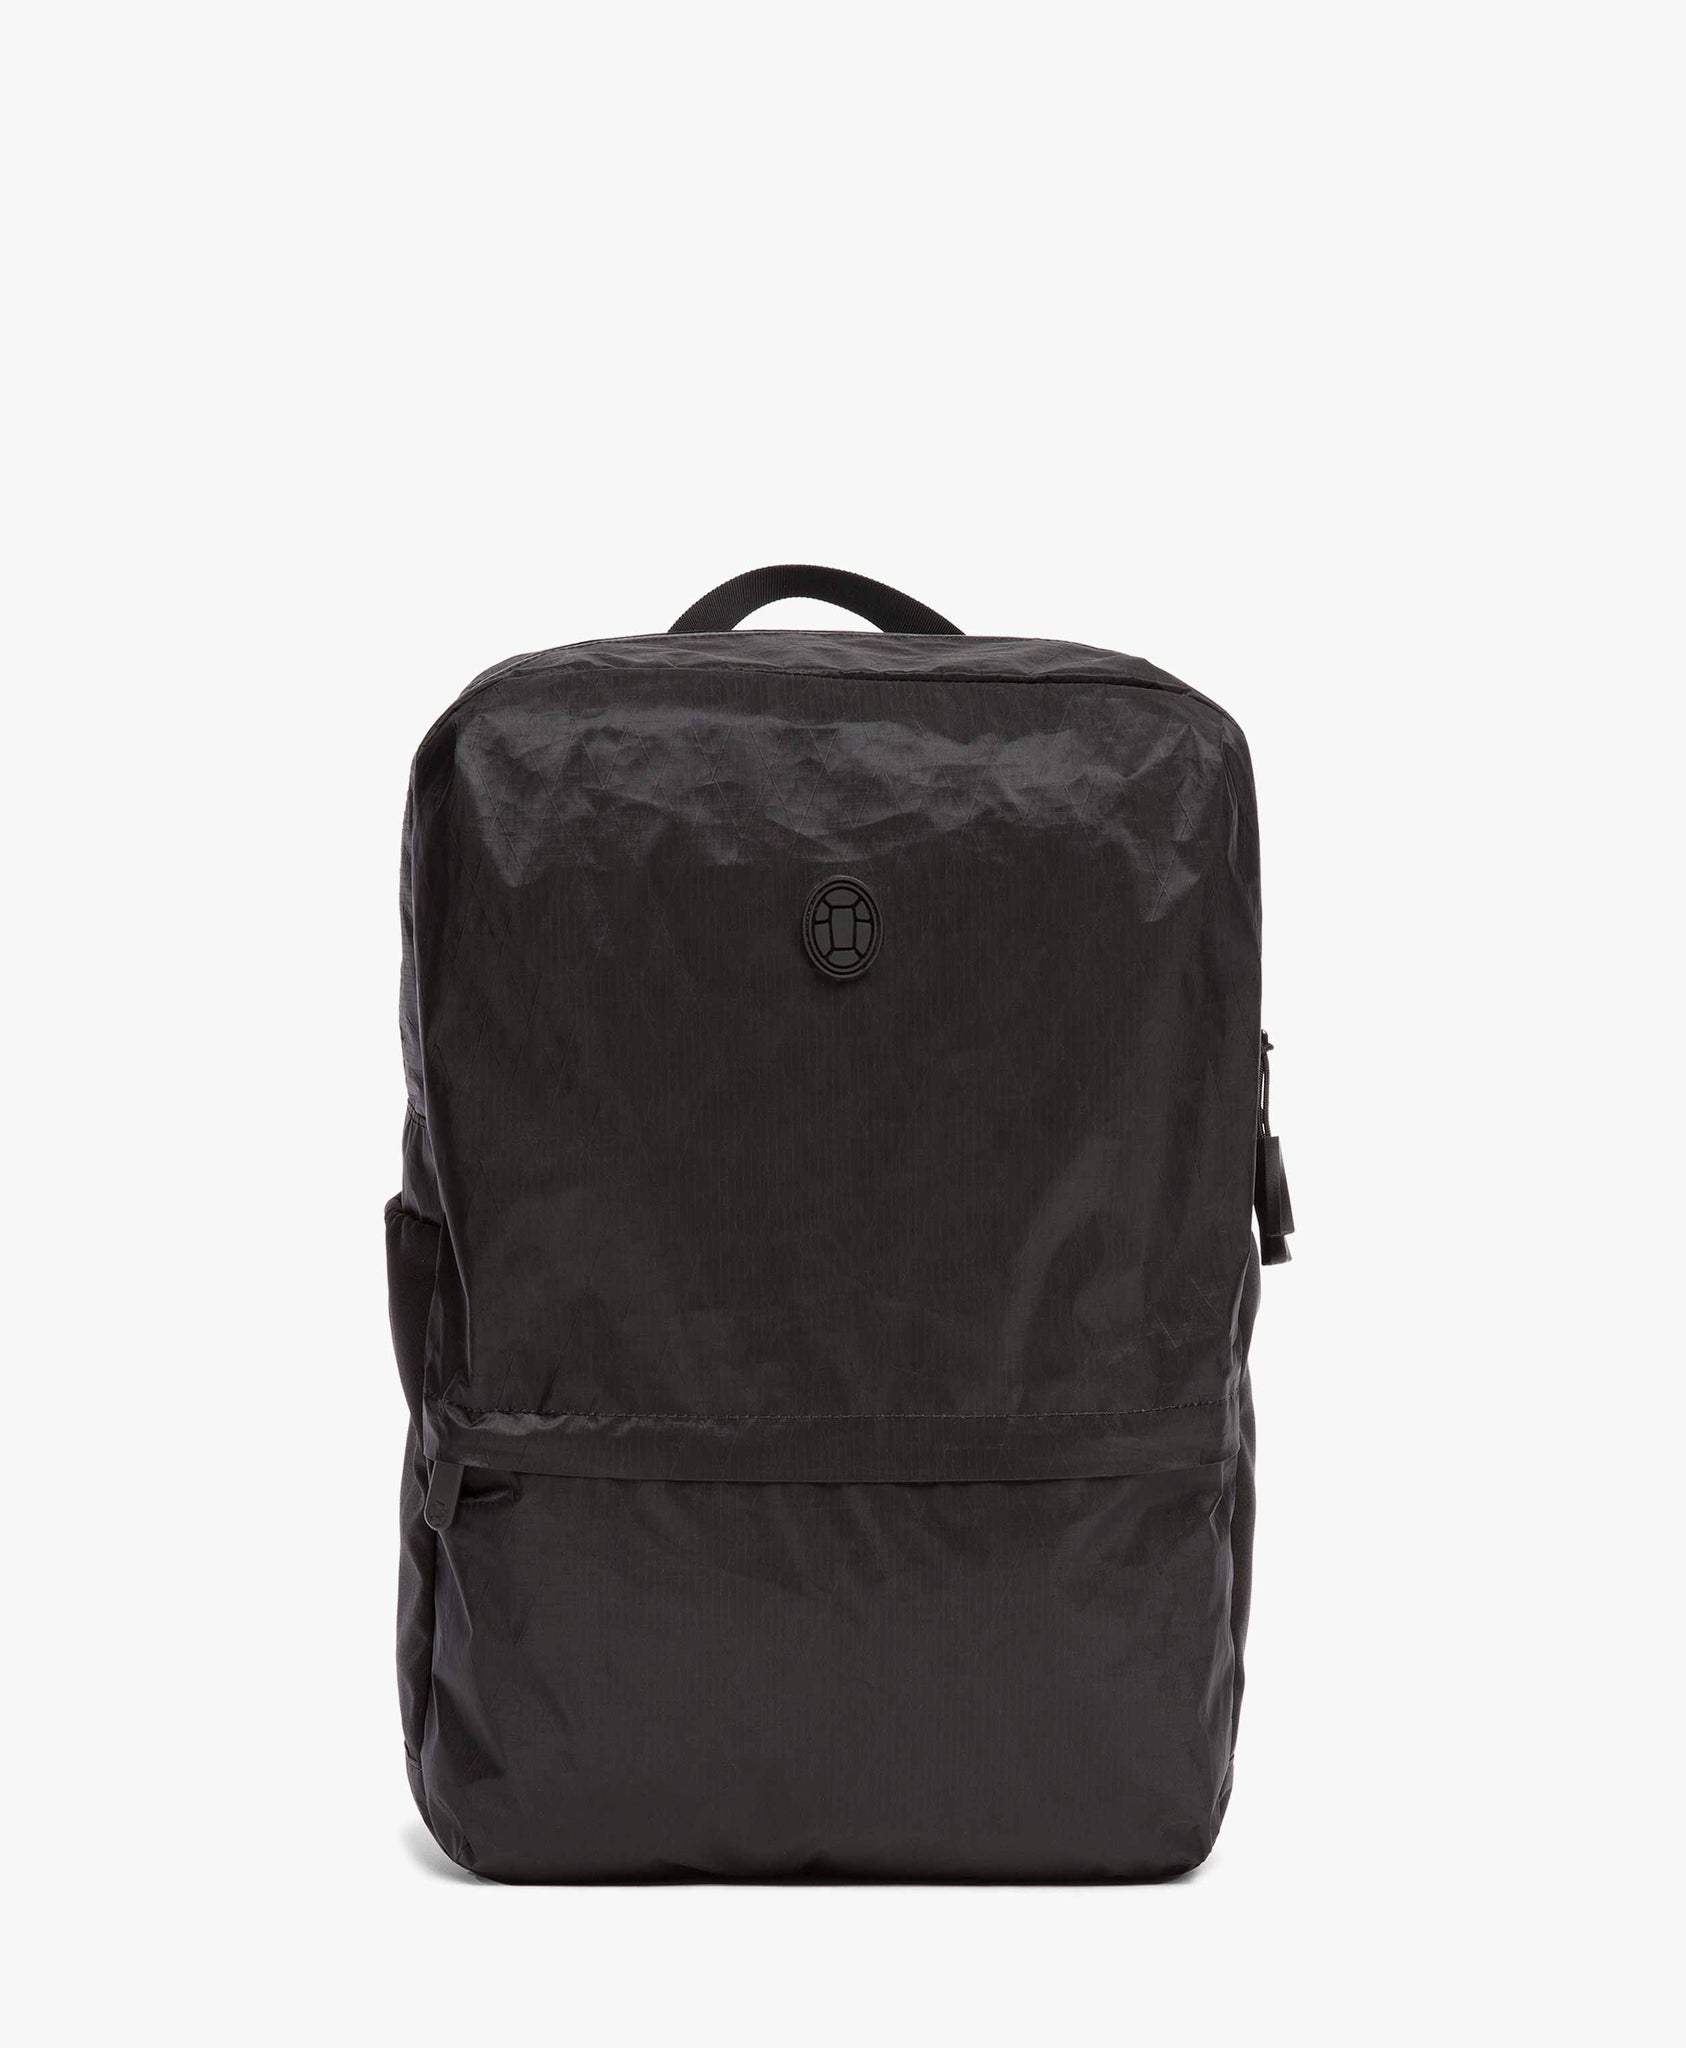 product/ The ultralight, weatherproof laptop backpack